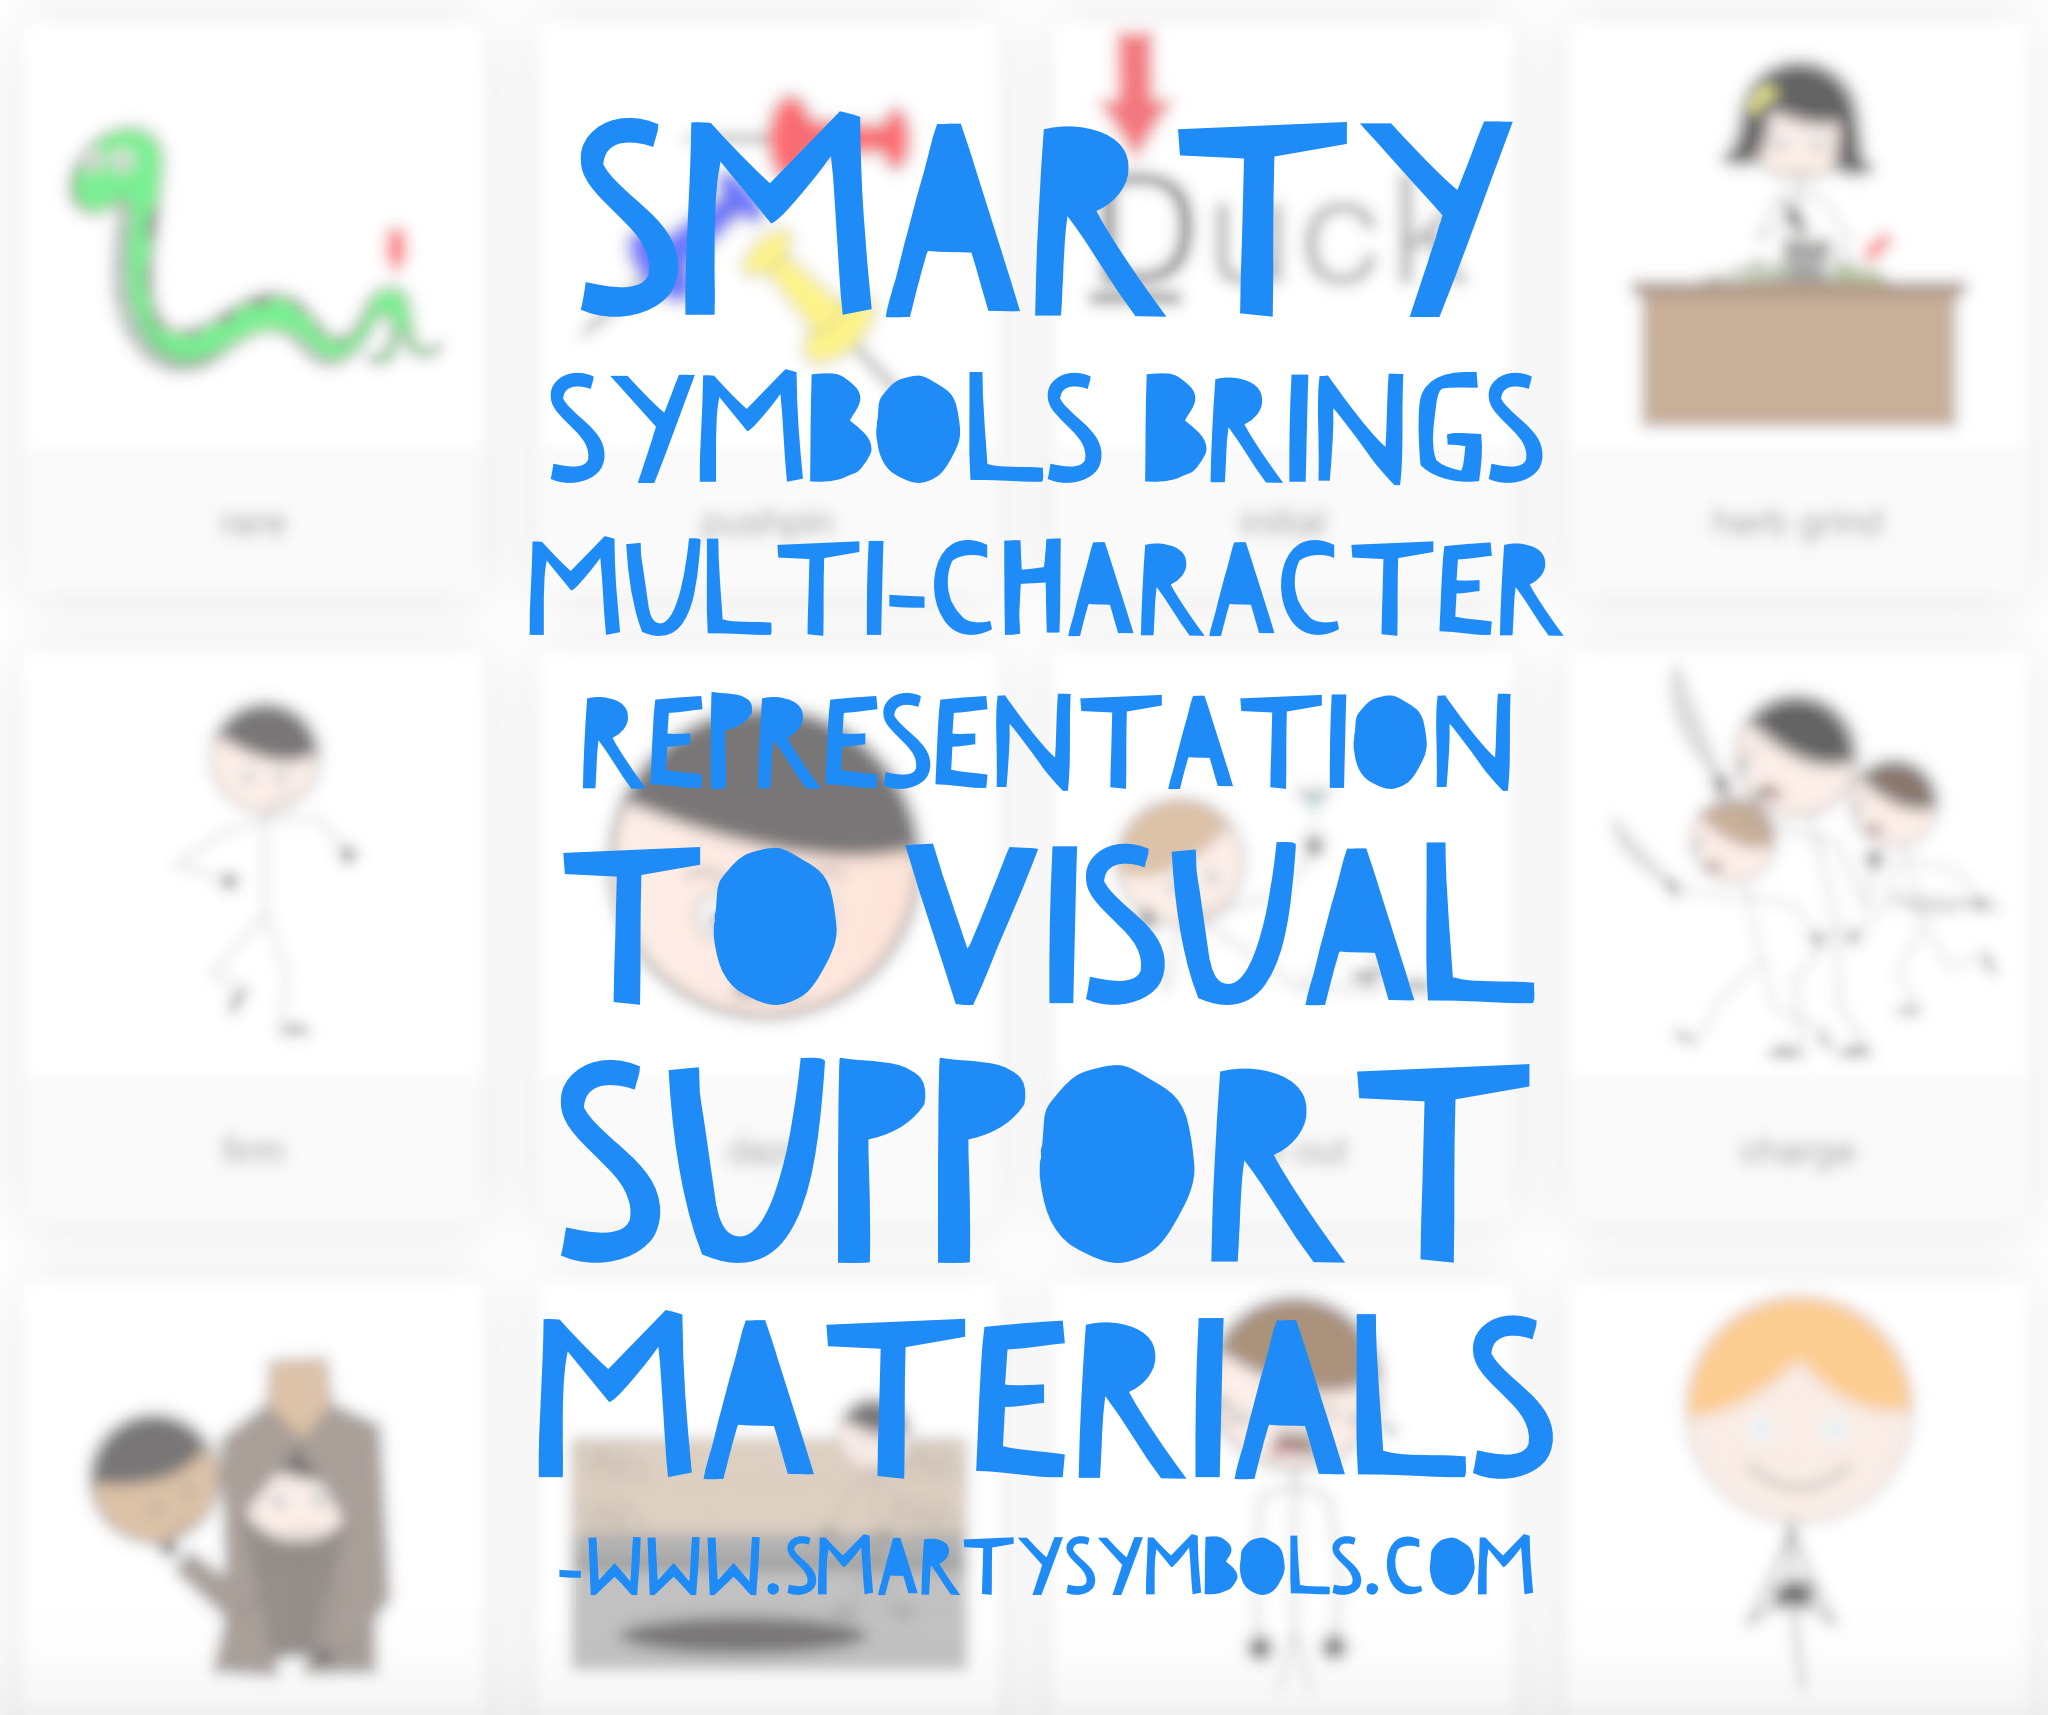 Smarty Symbols brings multi-character representation to visual support materials